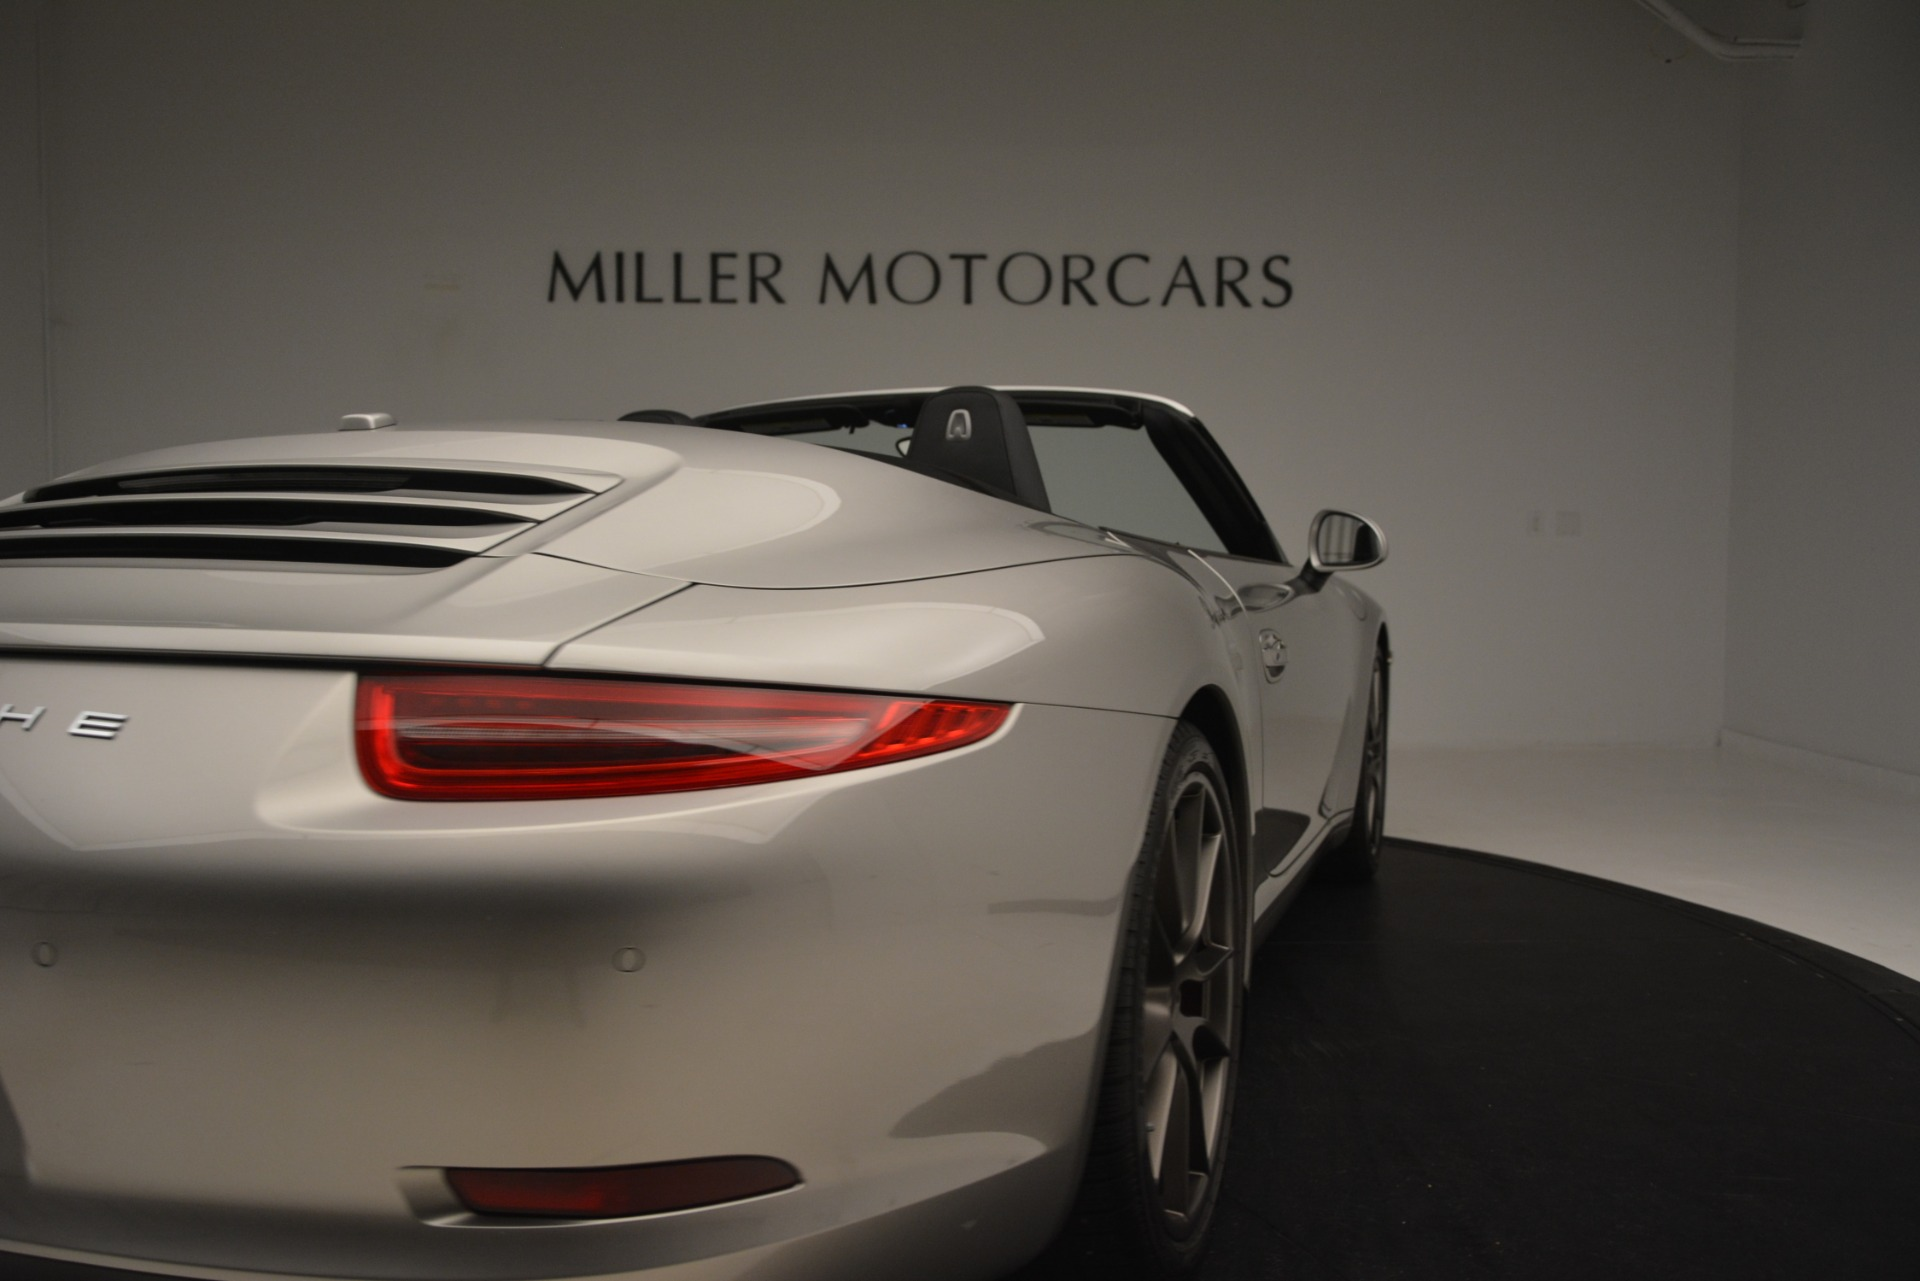 Used 2013 Porsche 911 Carrera S For Sale In Greenwich, CT 3107_p32